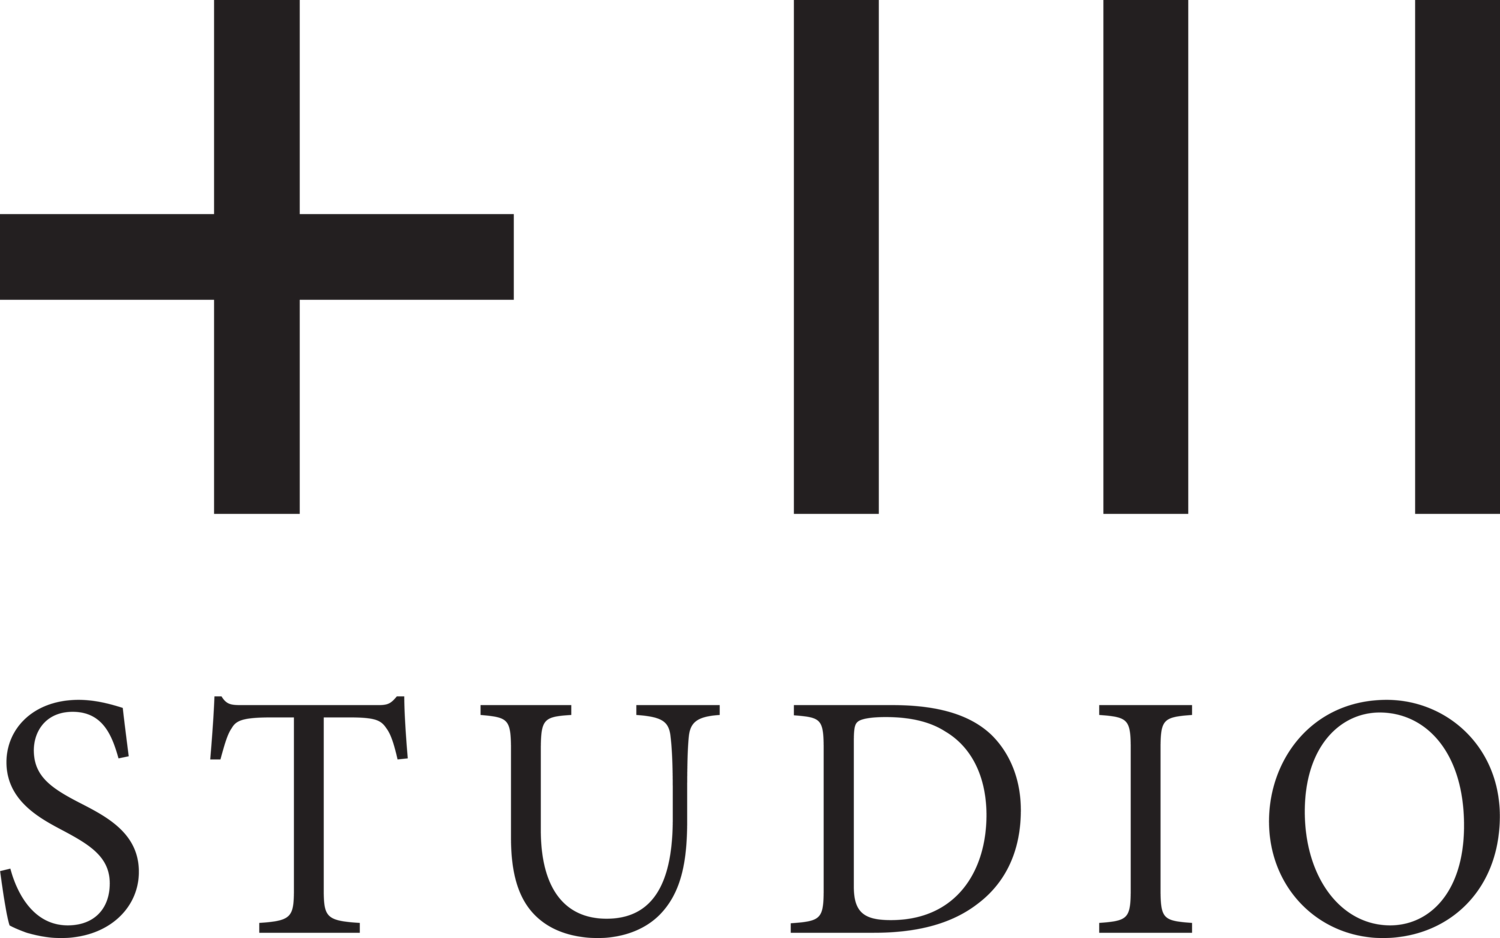 PLUS THREE STUDIO LTD